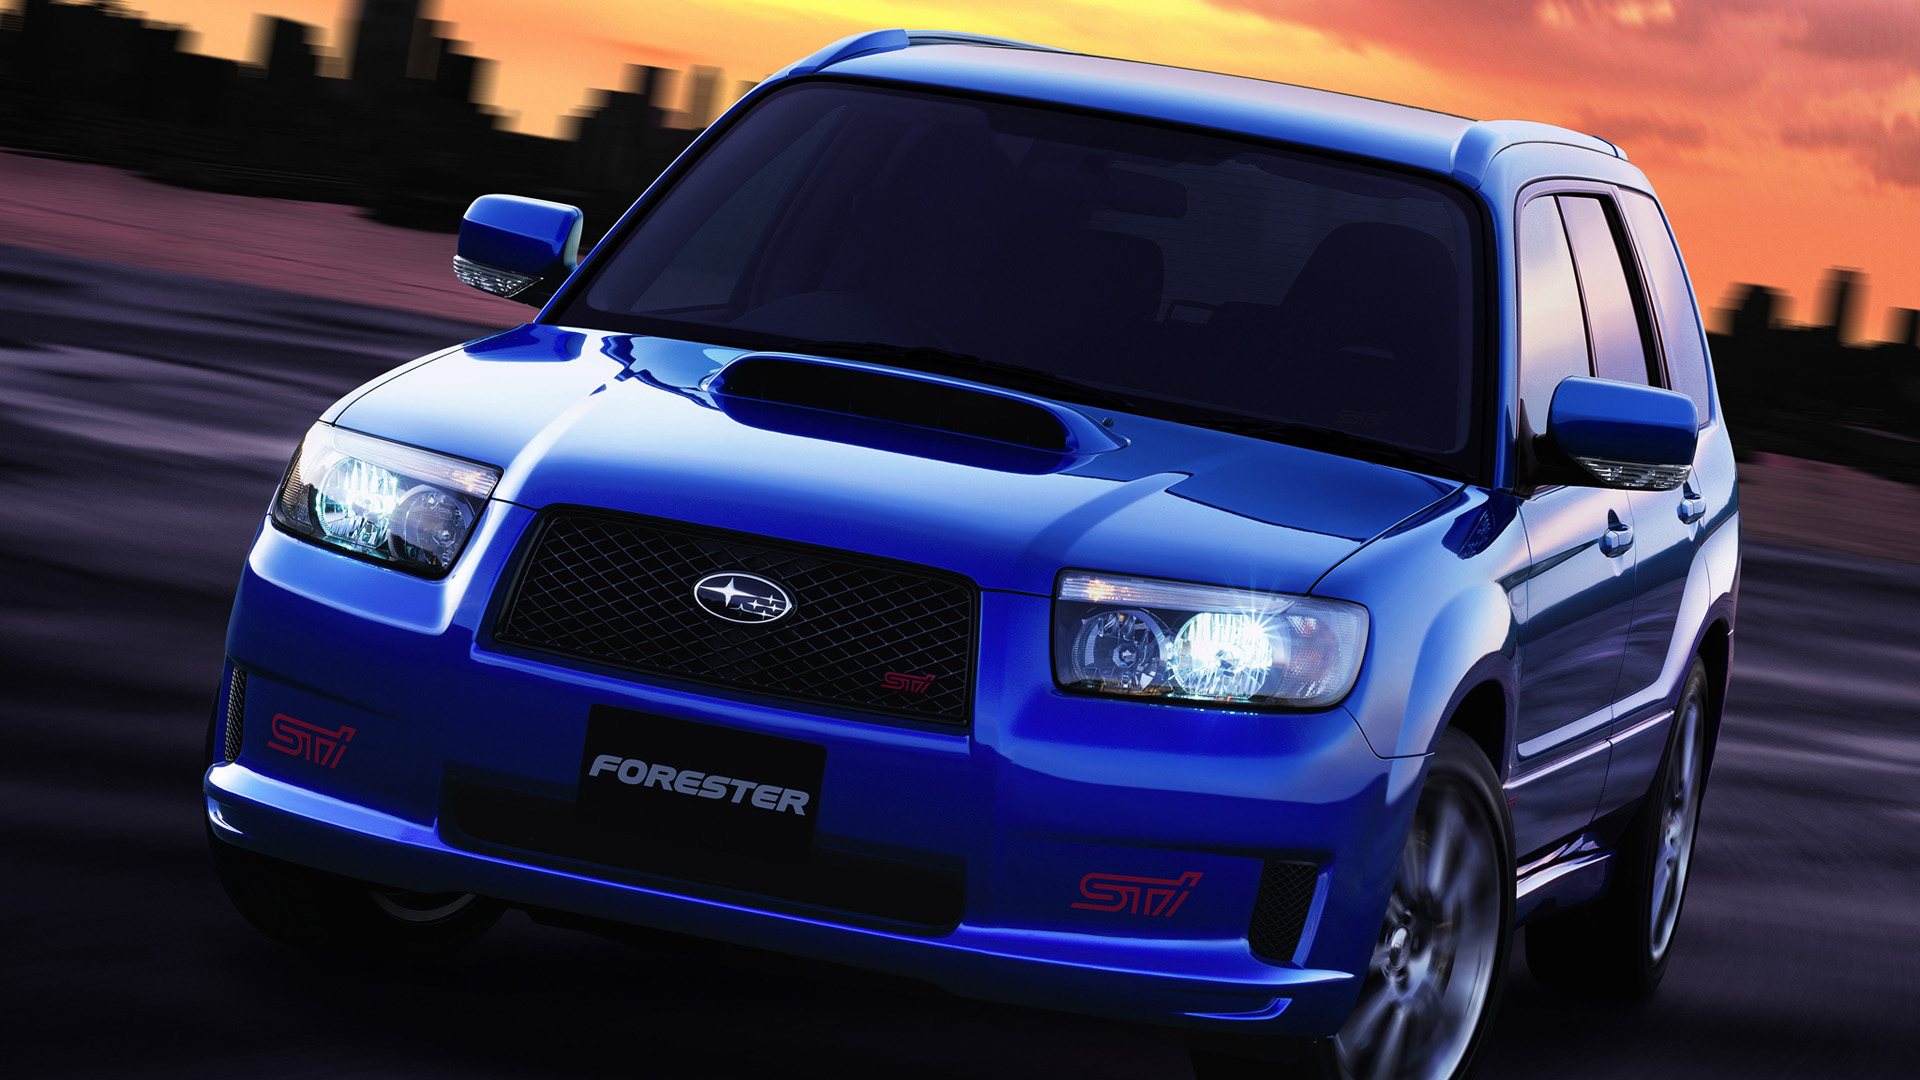 1920x1080 - Subaru Forester Wallpapers 32